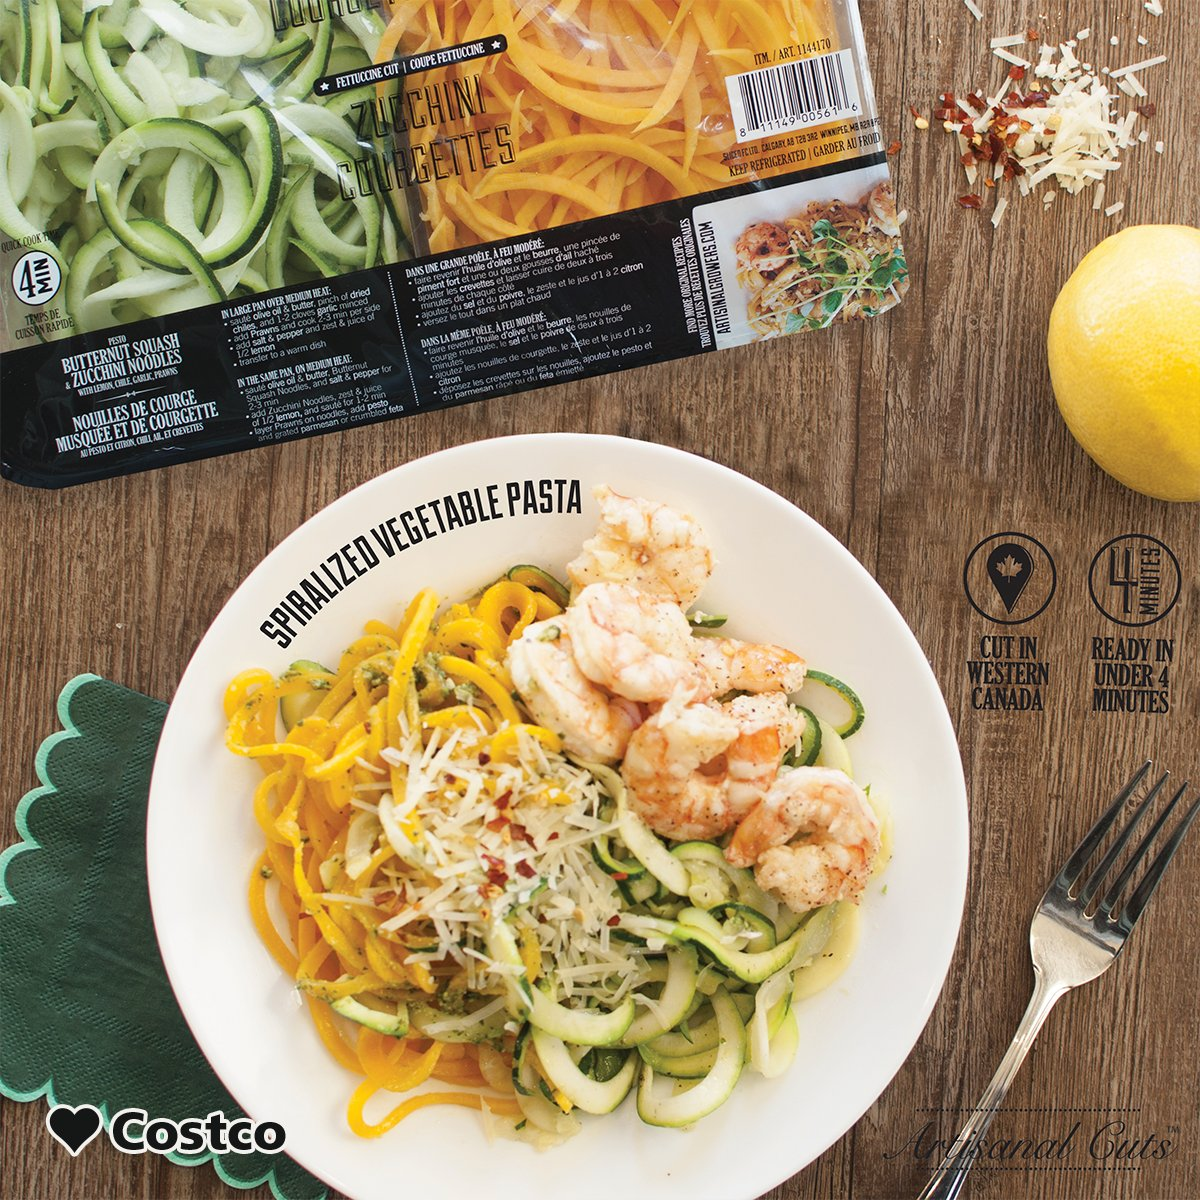 Costco Canada On Twitter Zucchini And Sweet Potato Noodles A